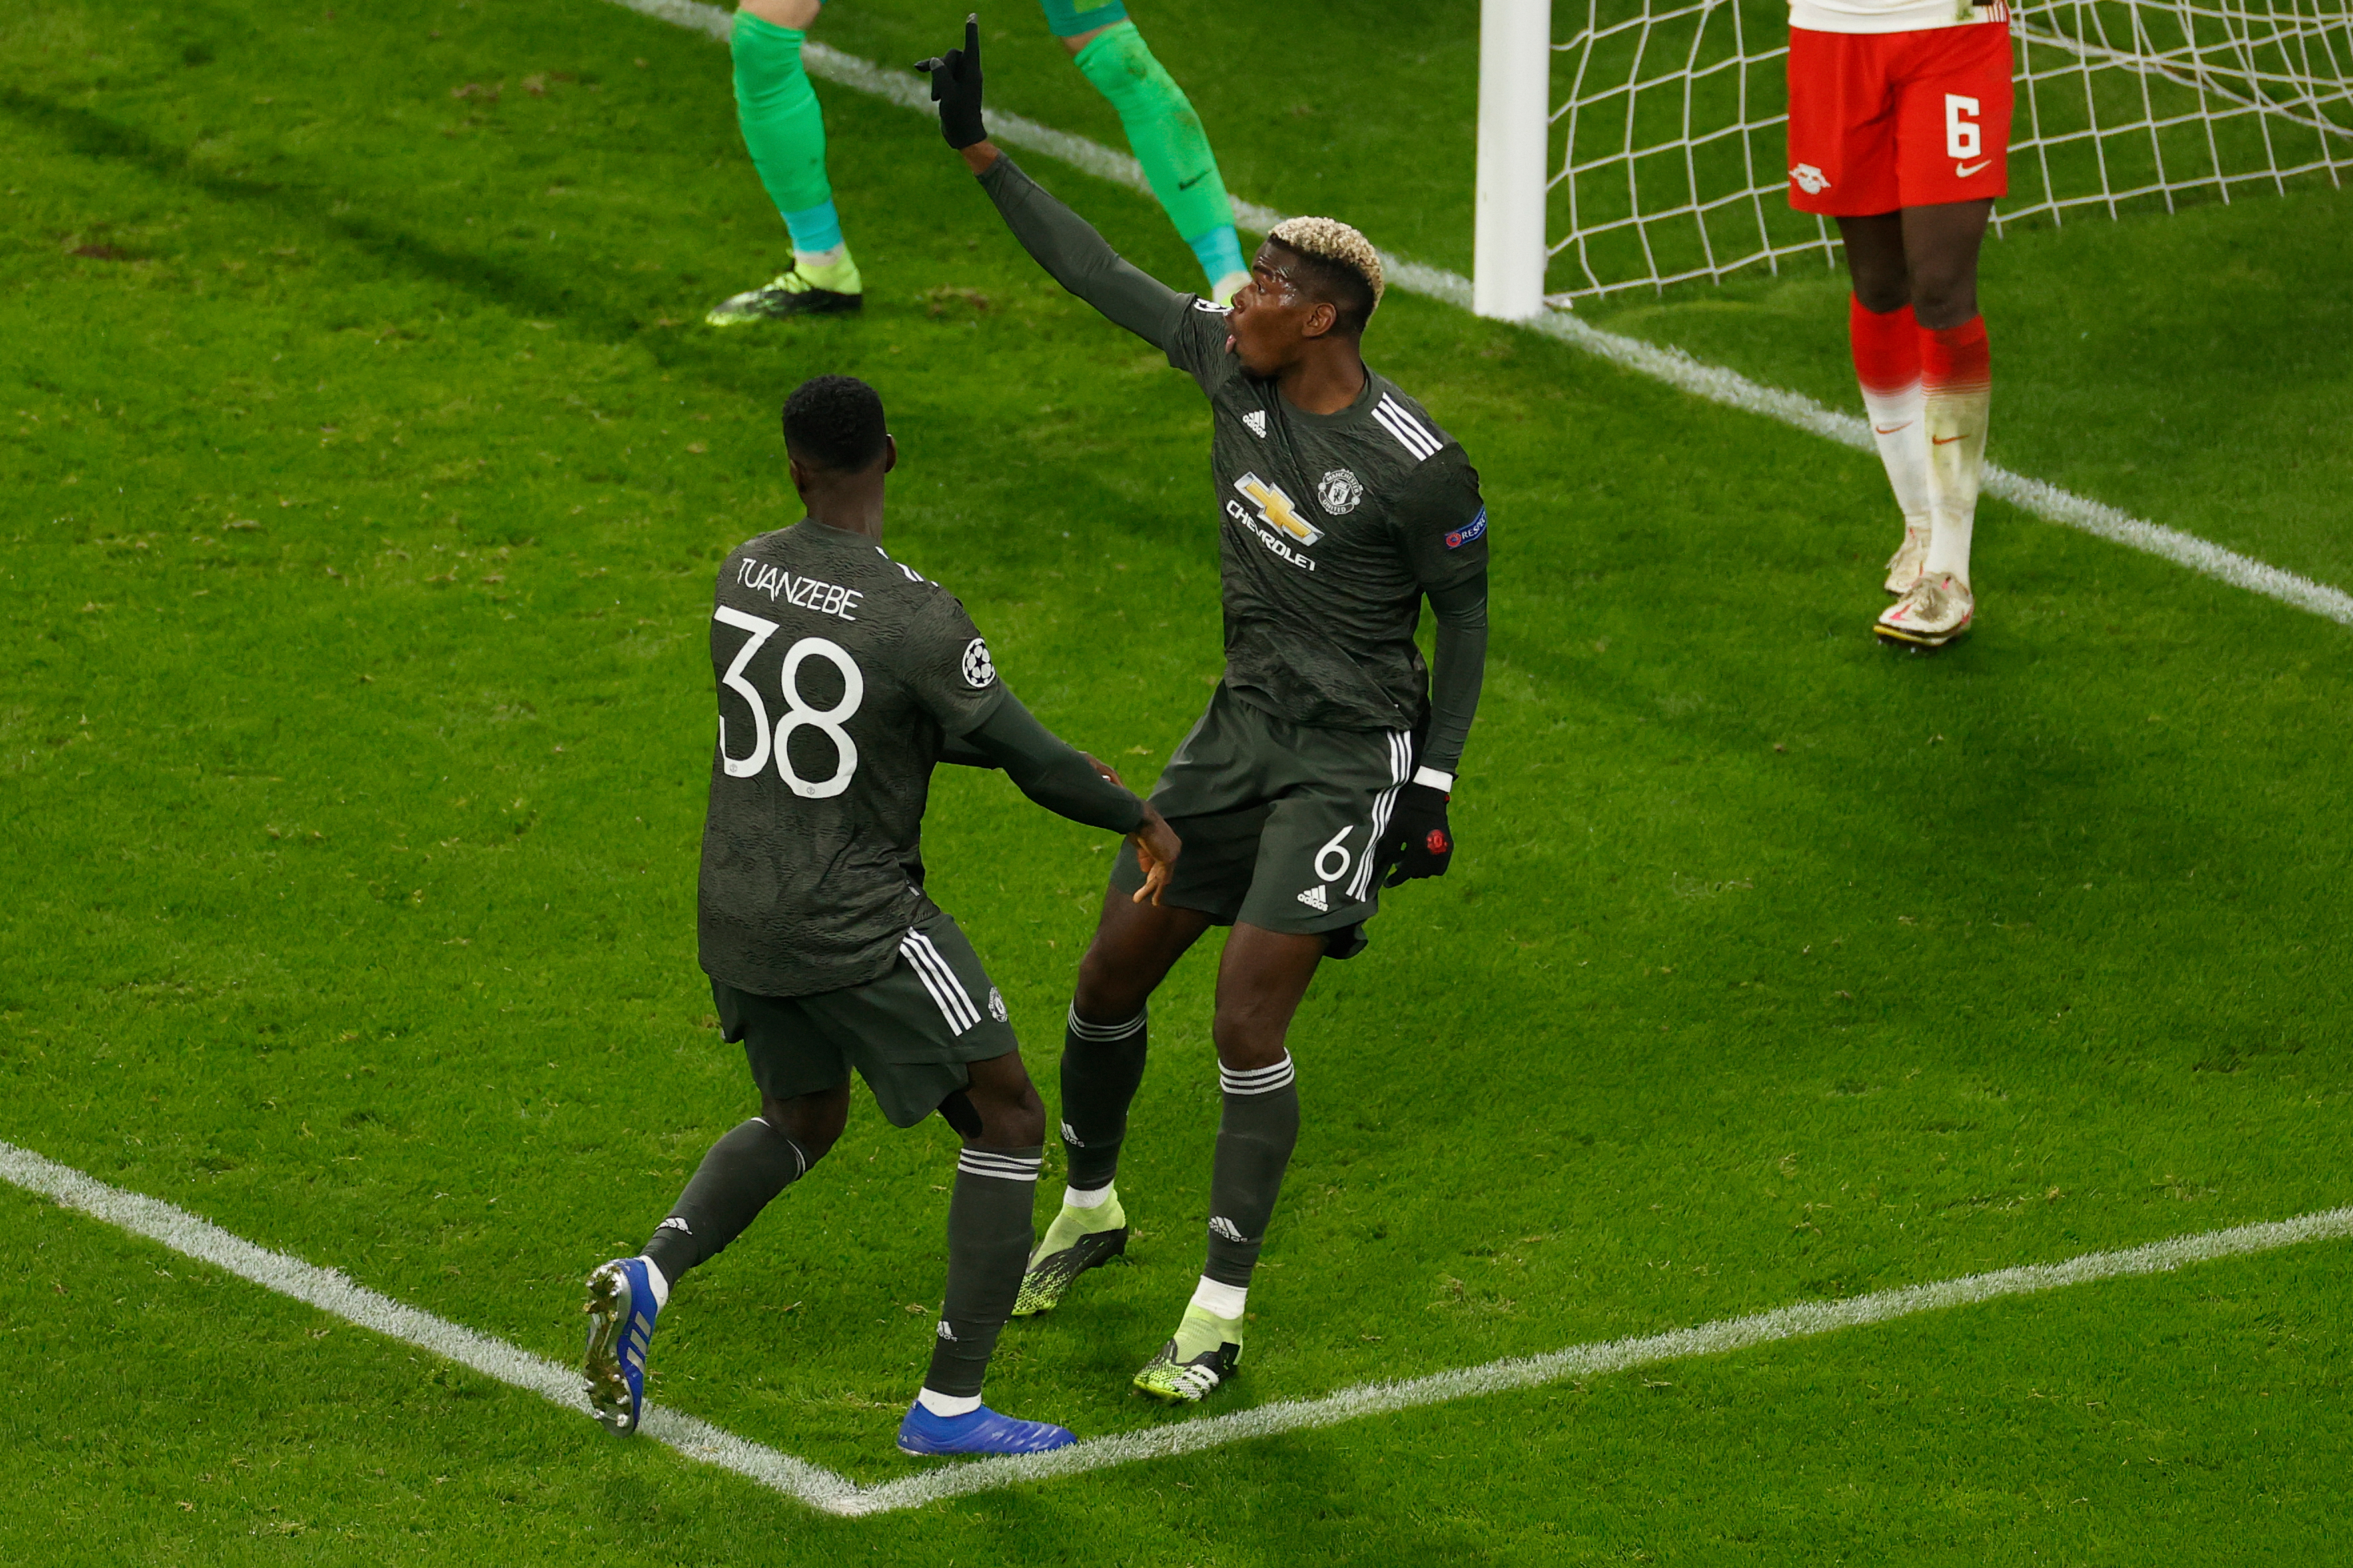 Manchester United knocked out of Champions League after 3-2 defeat against RB Leipzig | Football